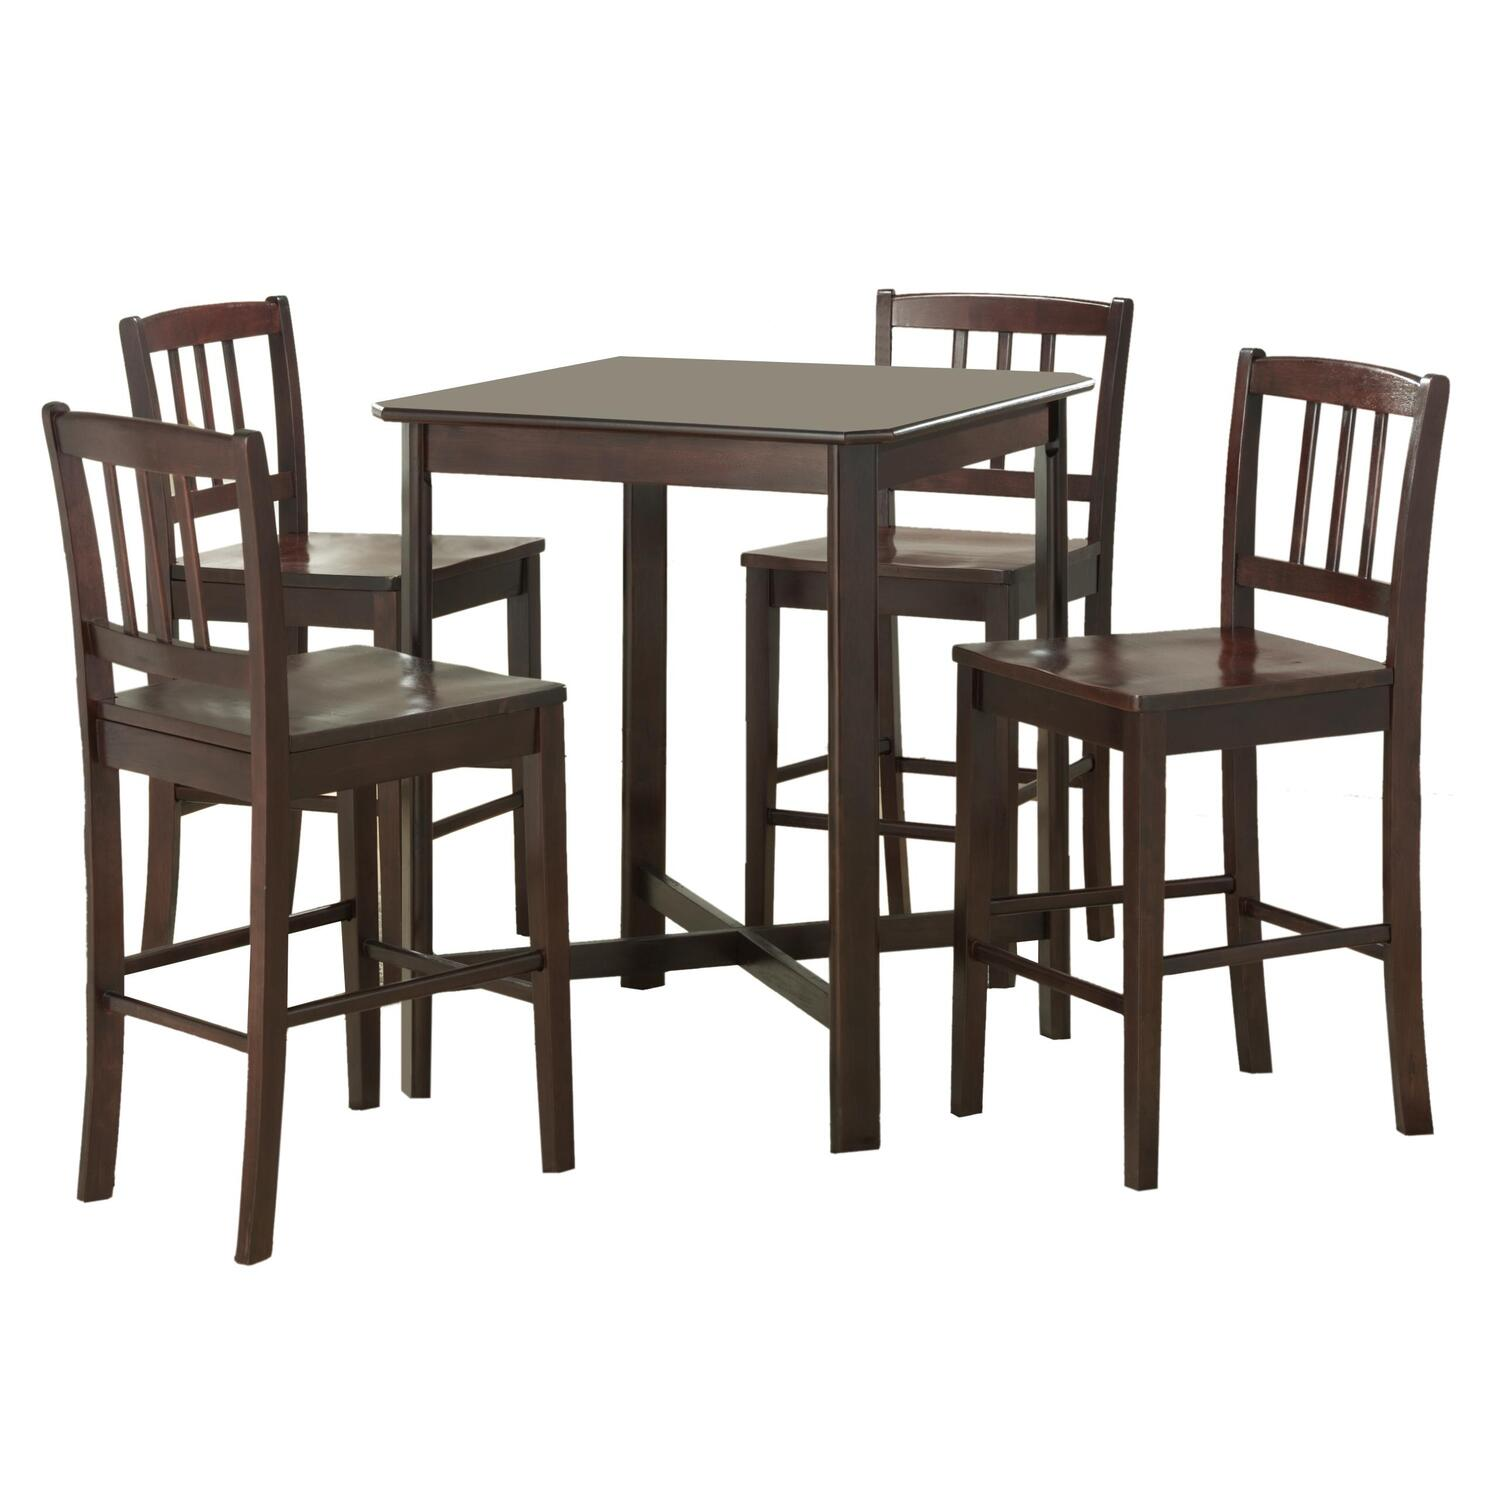 Wood pub table sets home decorating ideas